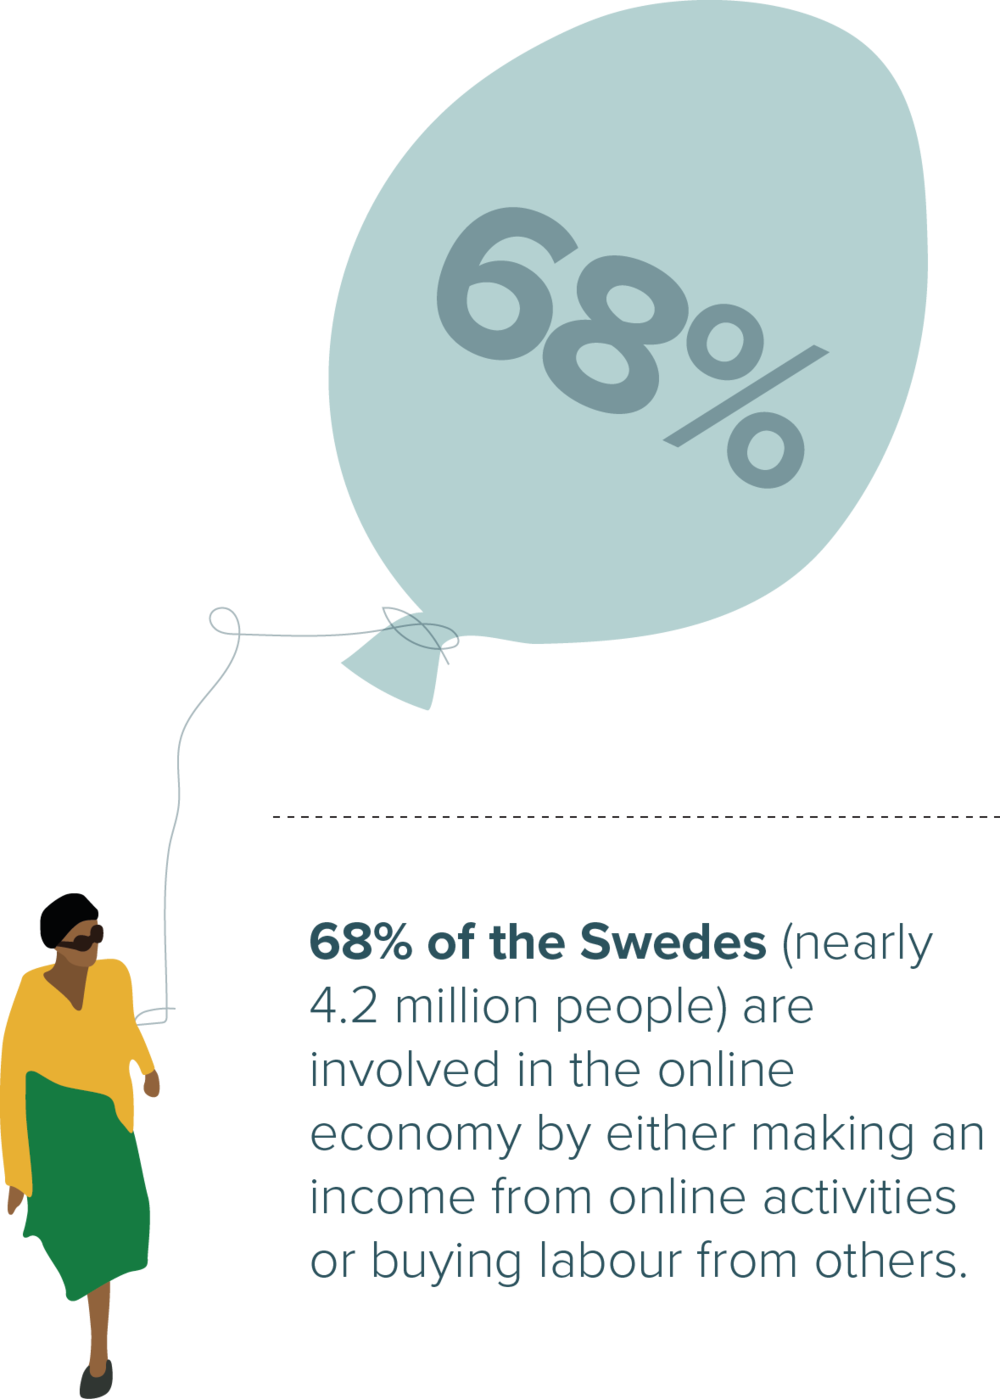 *Source: UNI Europa, FEPS, University of Hertfordshire Crowd working survey Swedens Digital Economy, 2016